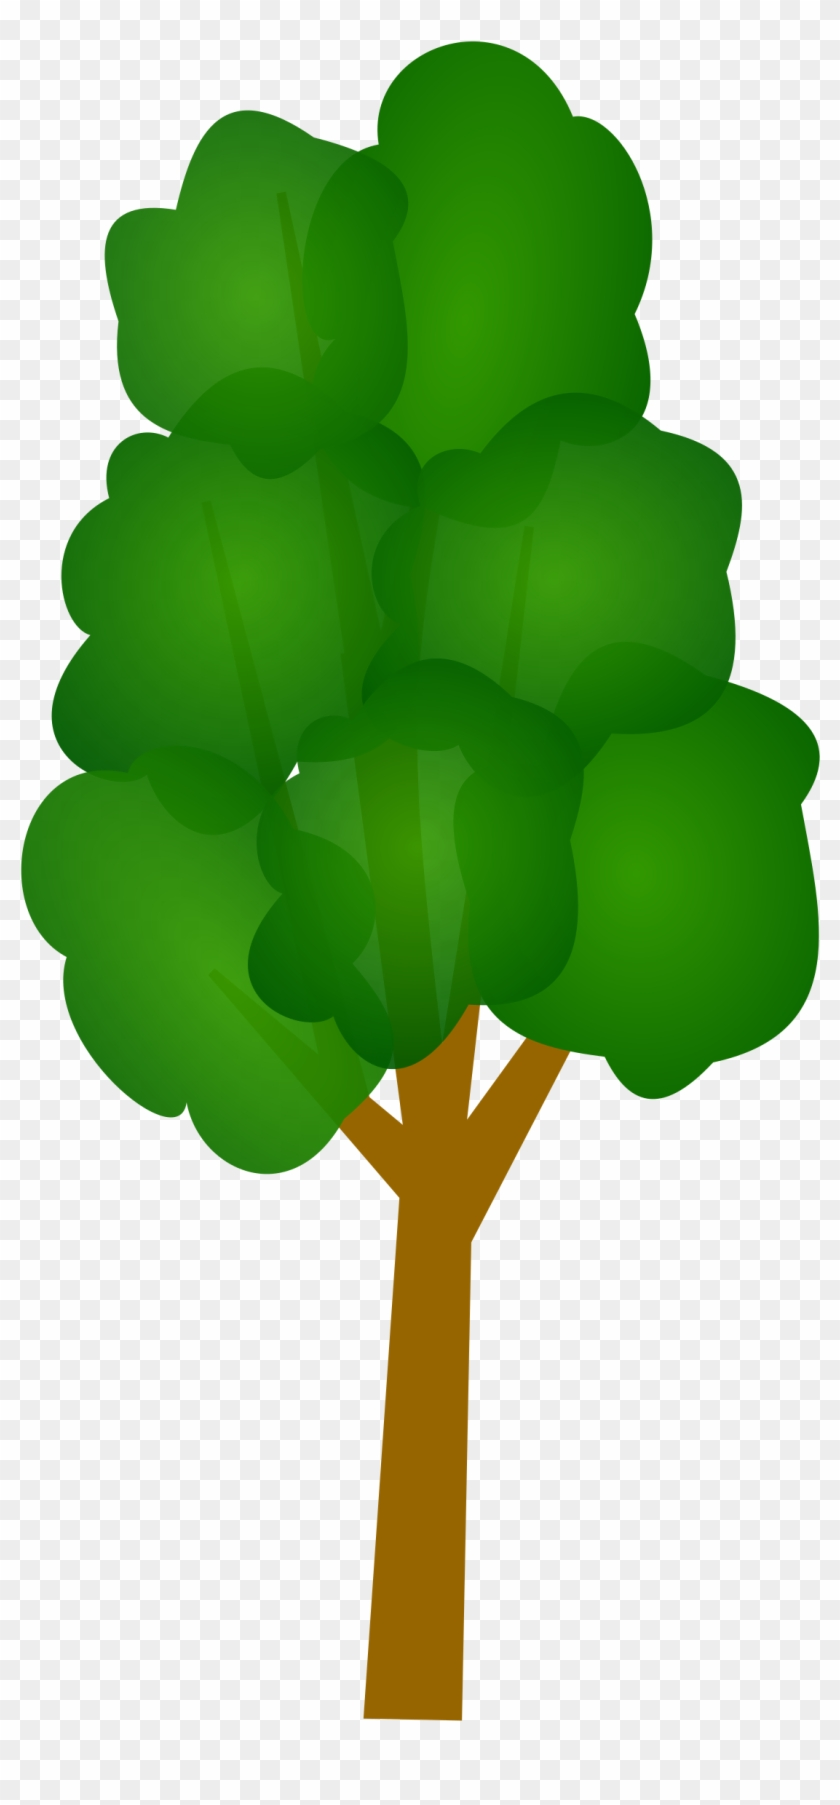 Free Clipart Images Of A Tree - Long Tree Vector Png #30169